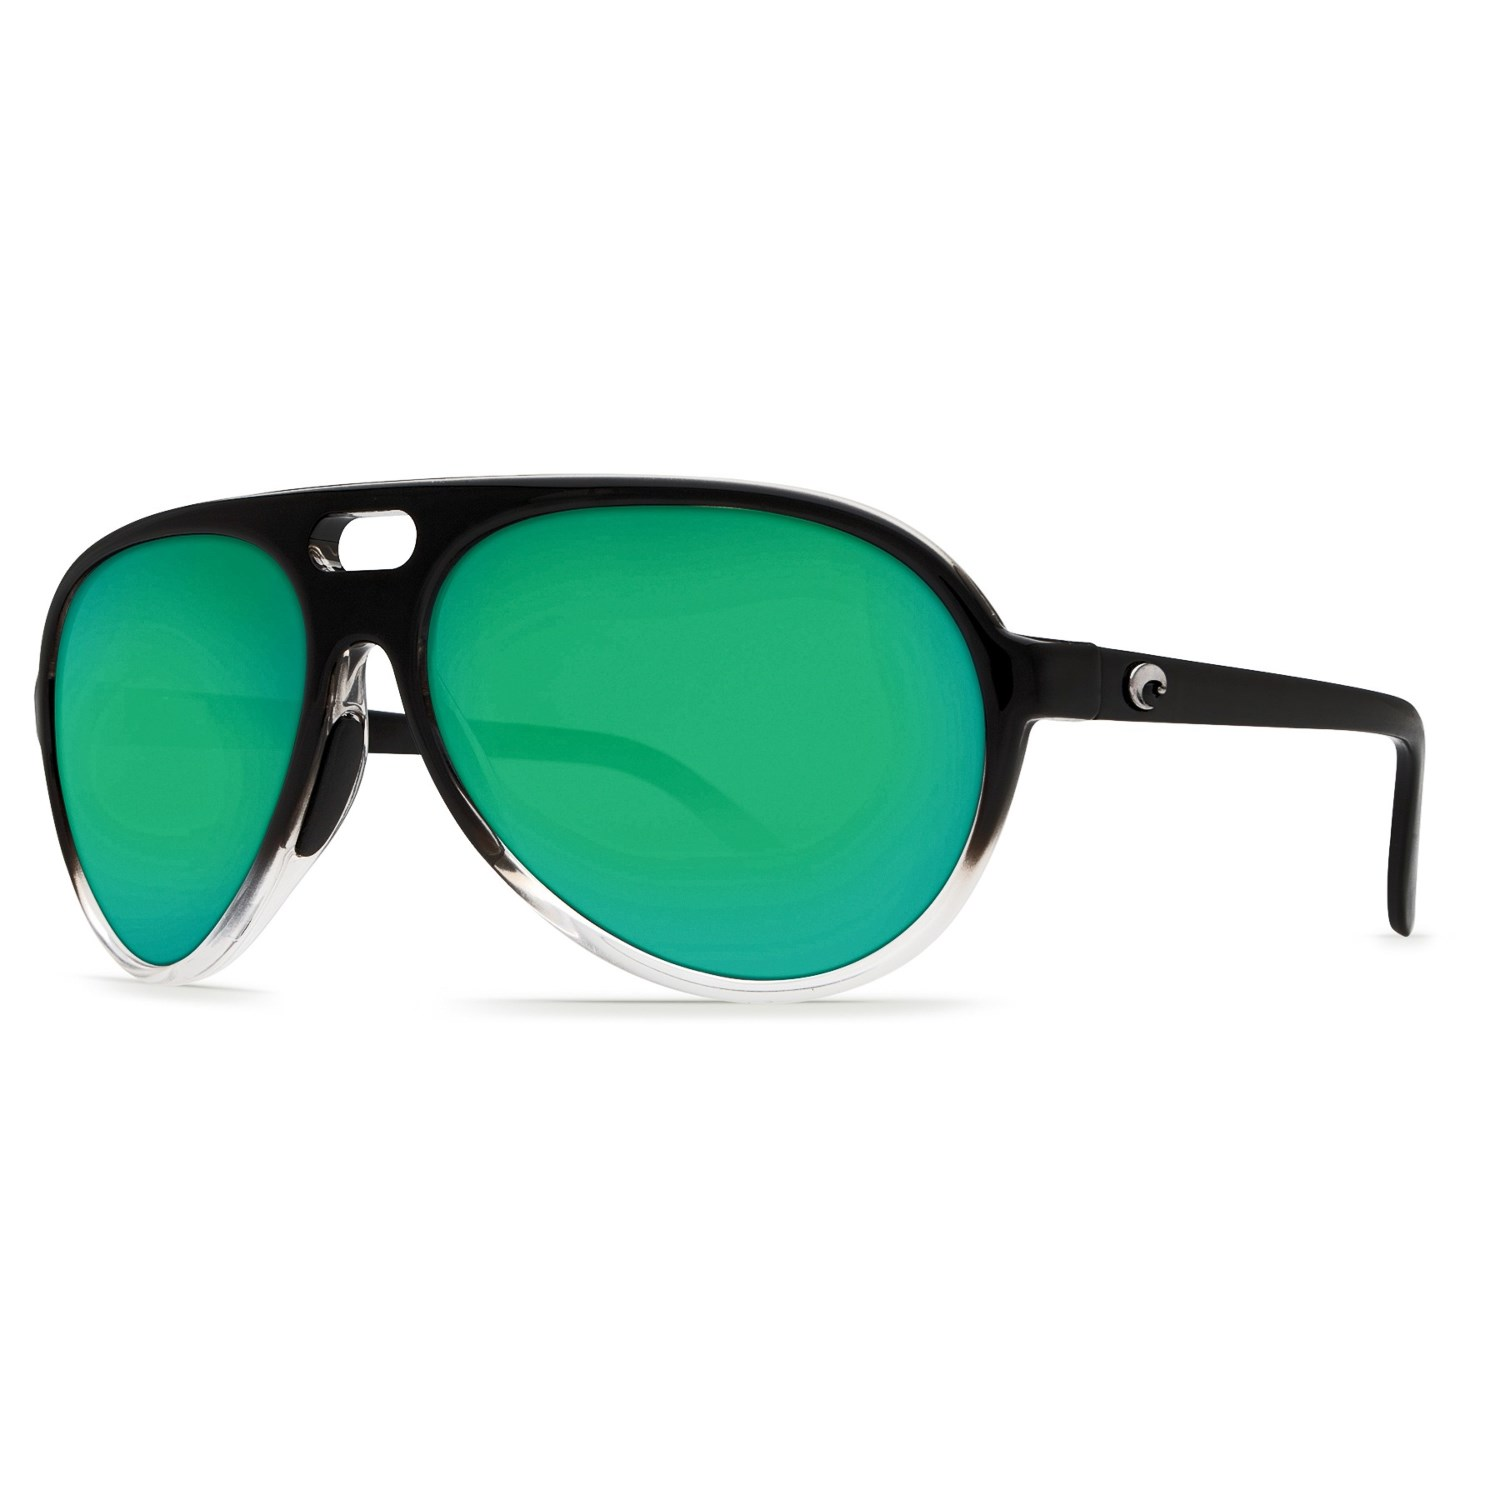 sunglasses with glass lenses polarized szdb  sunglasses with glass lenses polarized